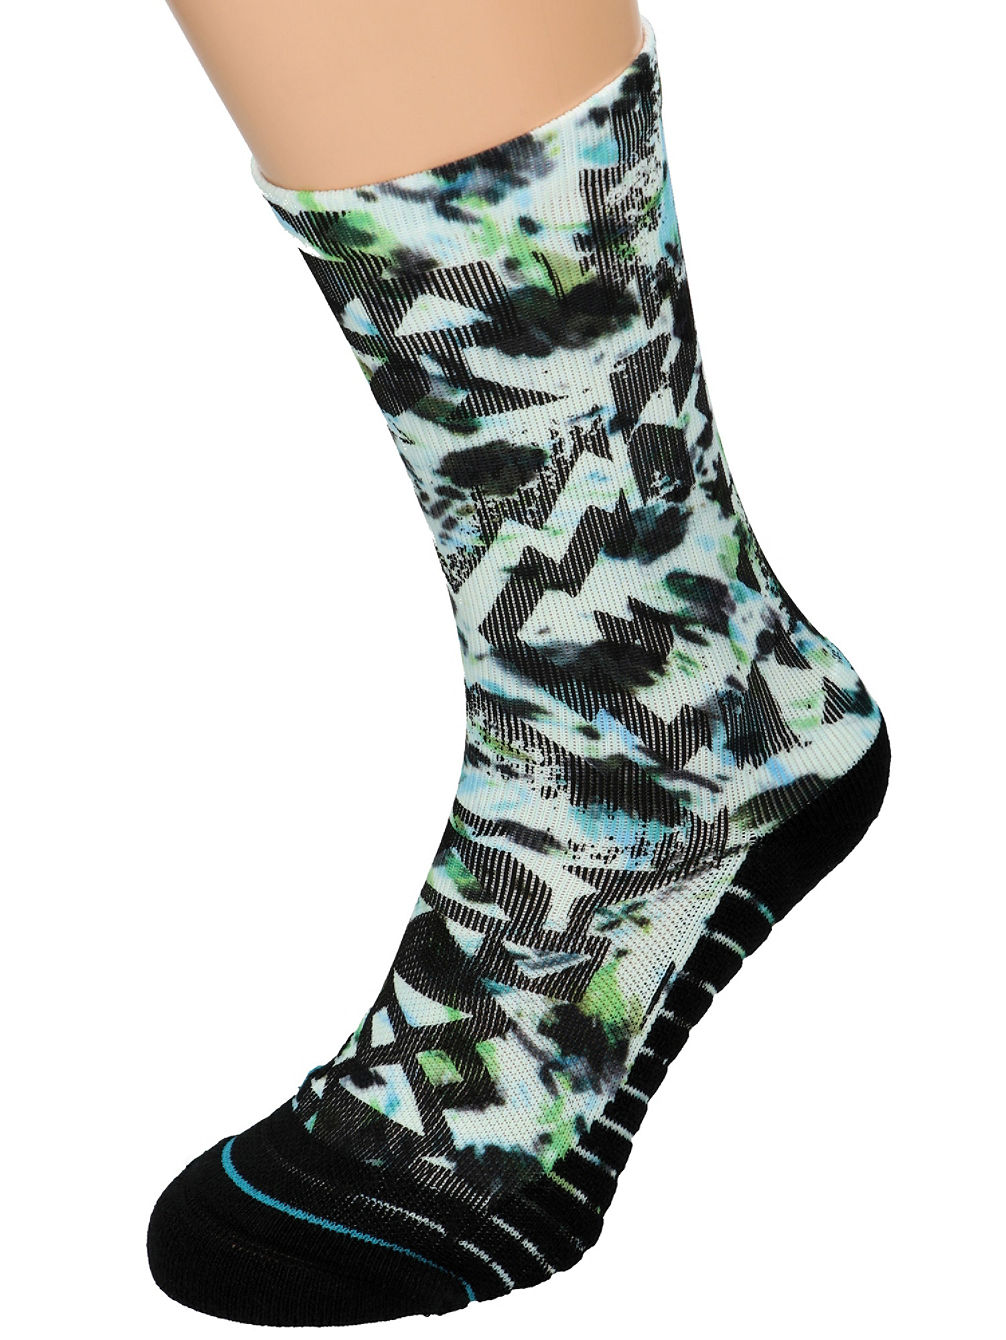 Reverb Athletic Socks